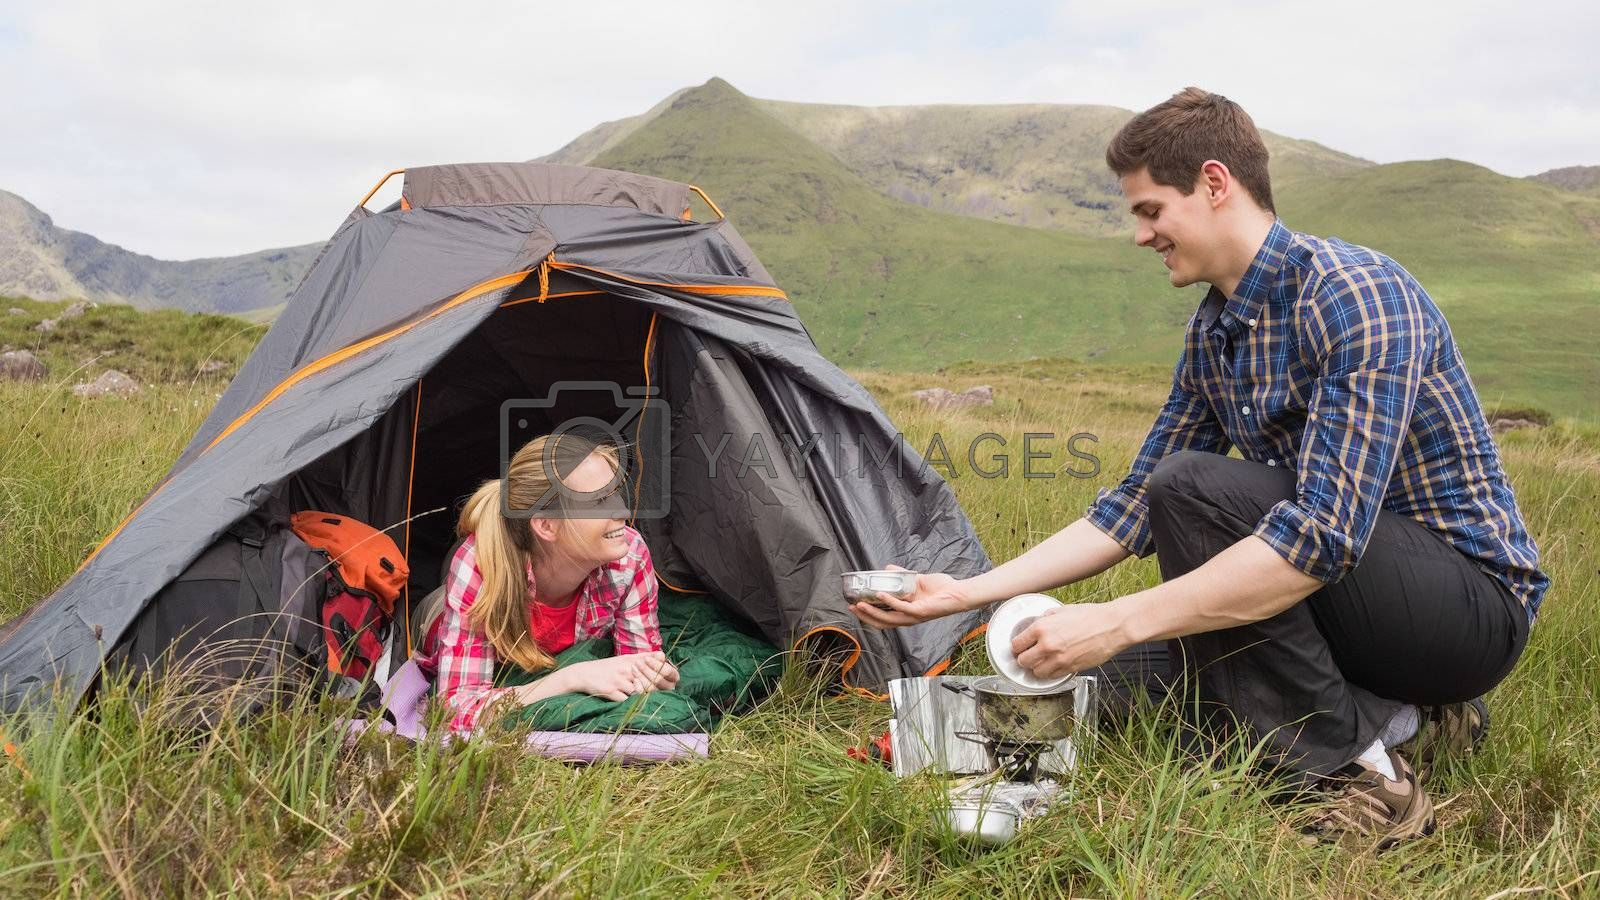 Smiling couple cooking outside on camping trip by Wavebreakmedia